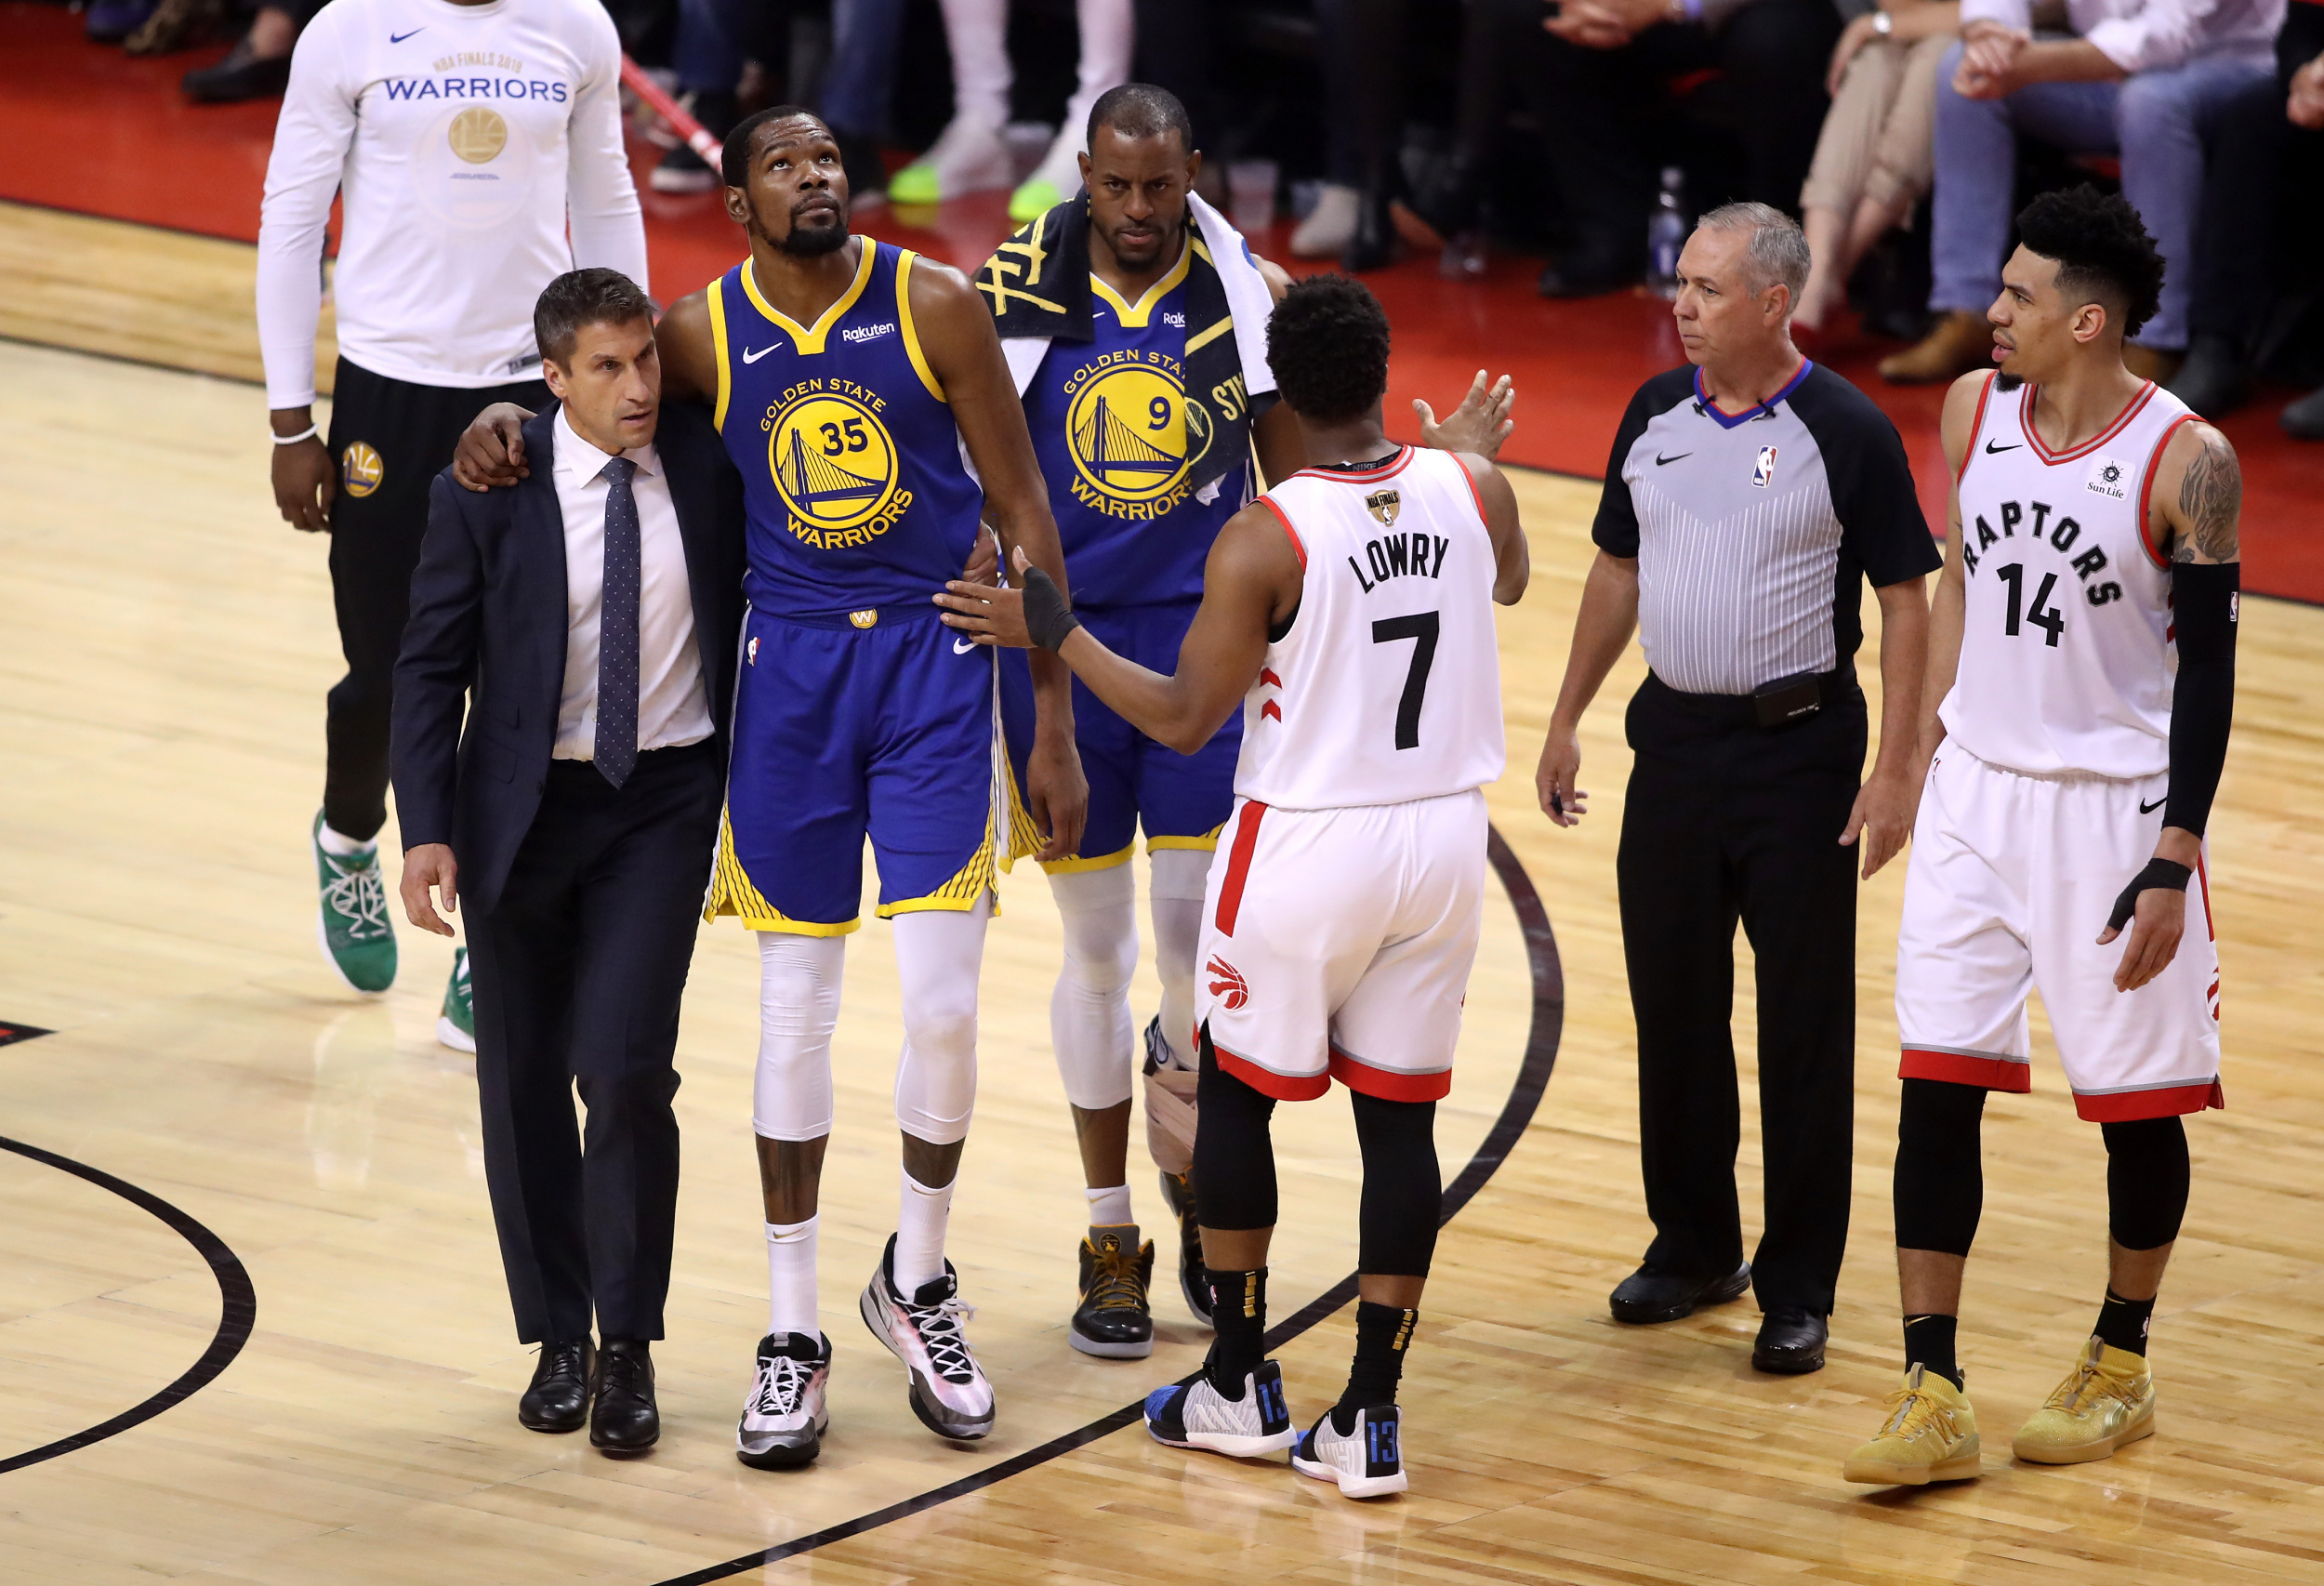 Nba Finals Schedule Tonight Raptors Vs Warriors Game 6 Live Stream Tv Channel Score And Latest Odds